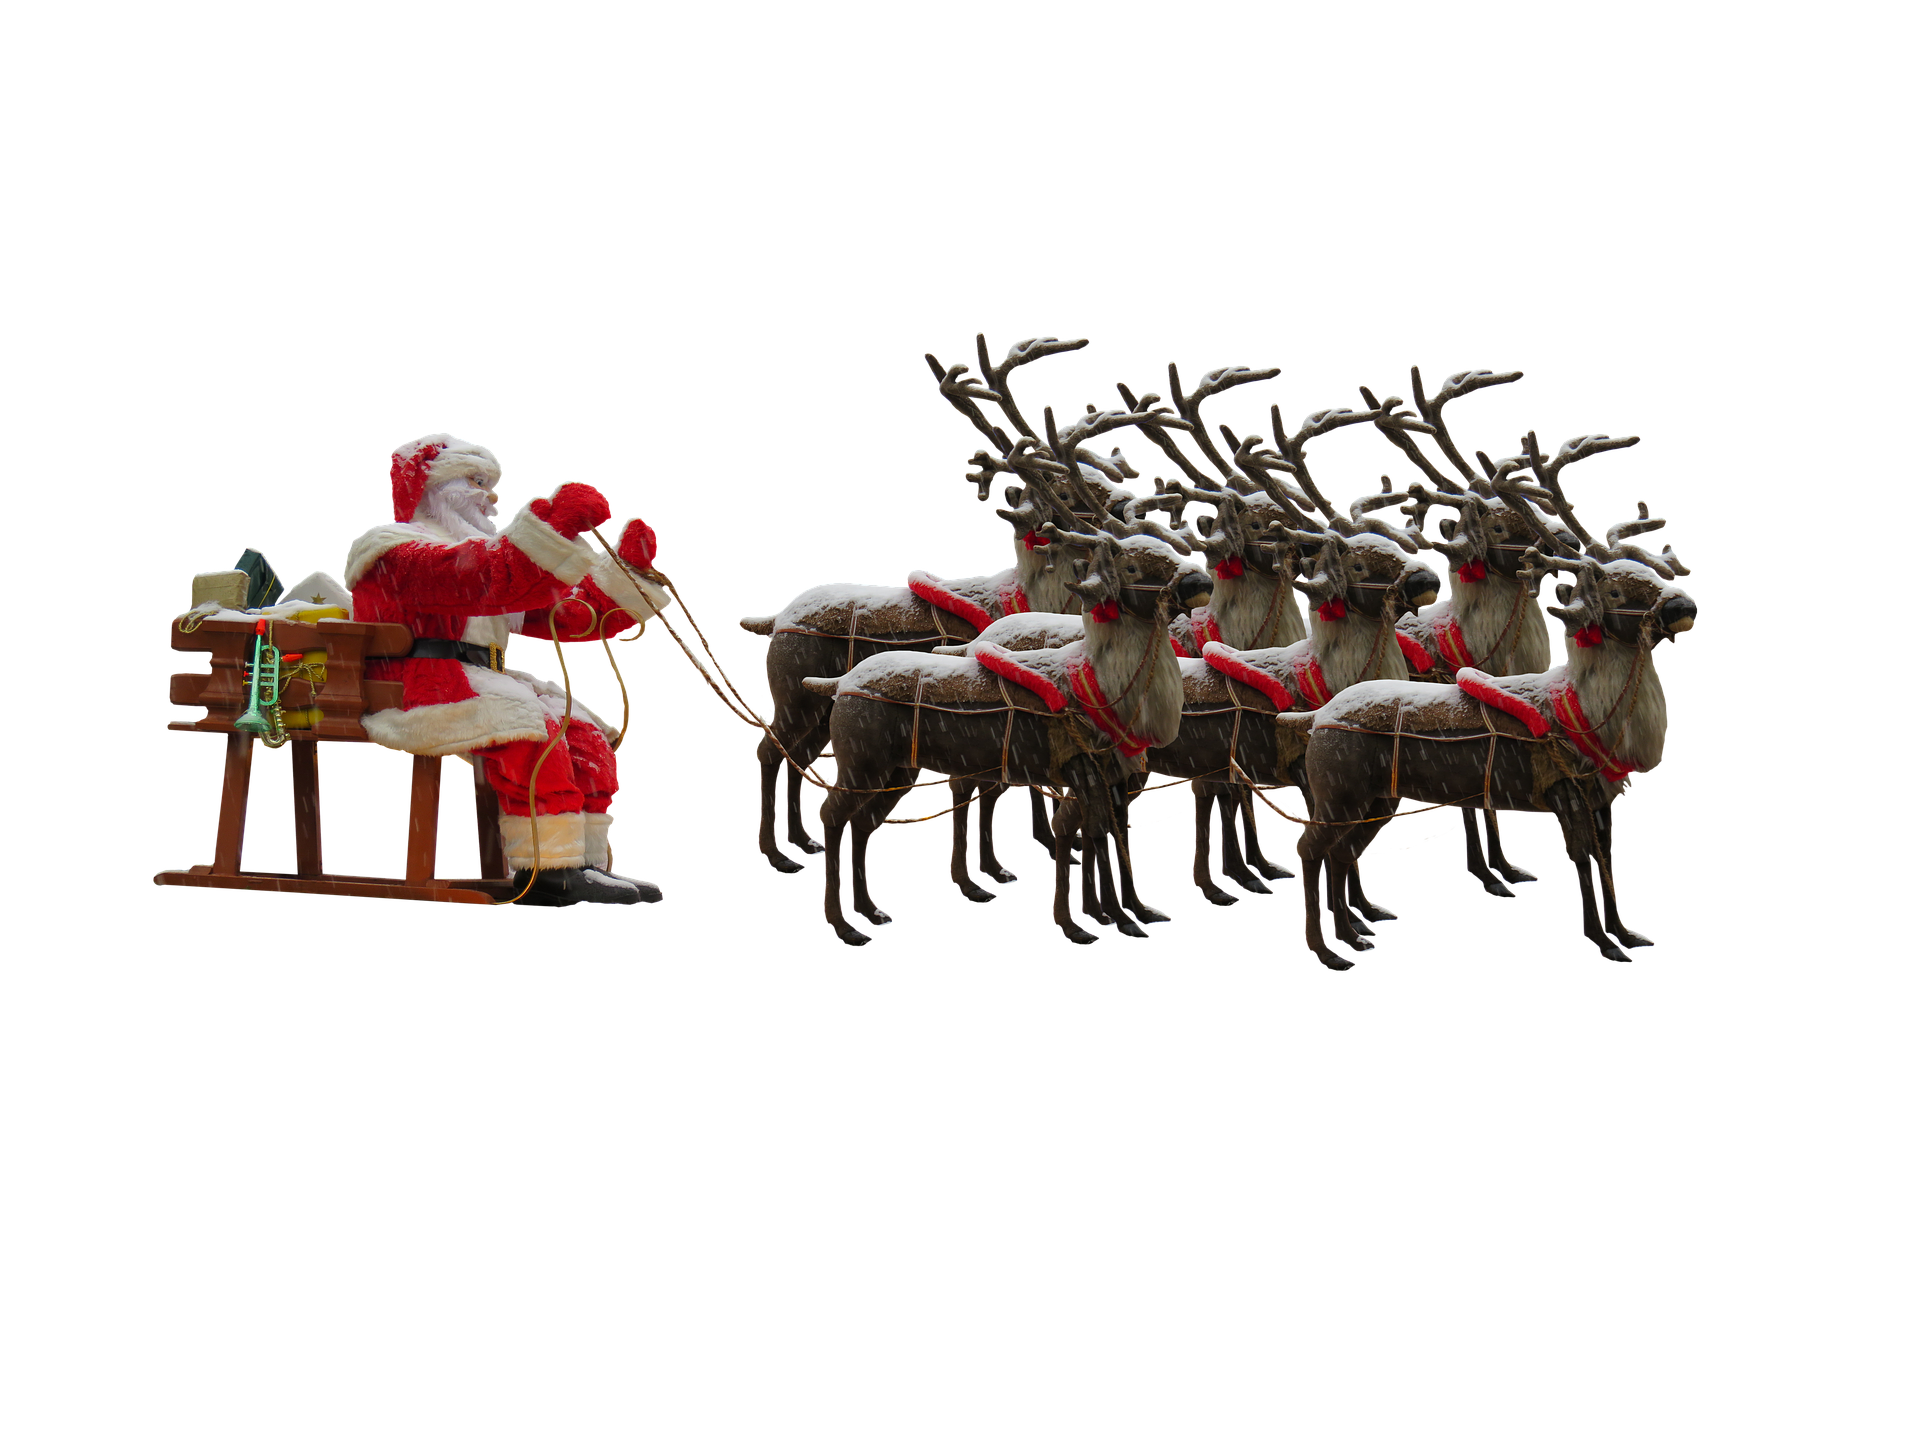 USDA Clears Santa's Reindeer for Entry into       the United States